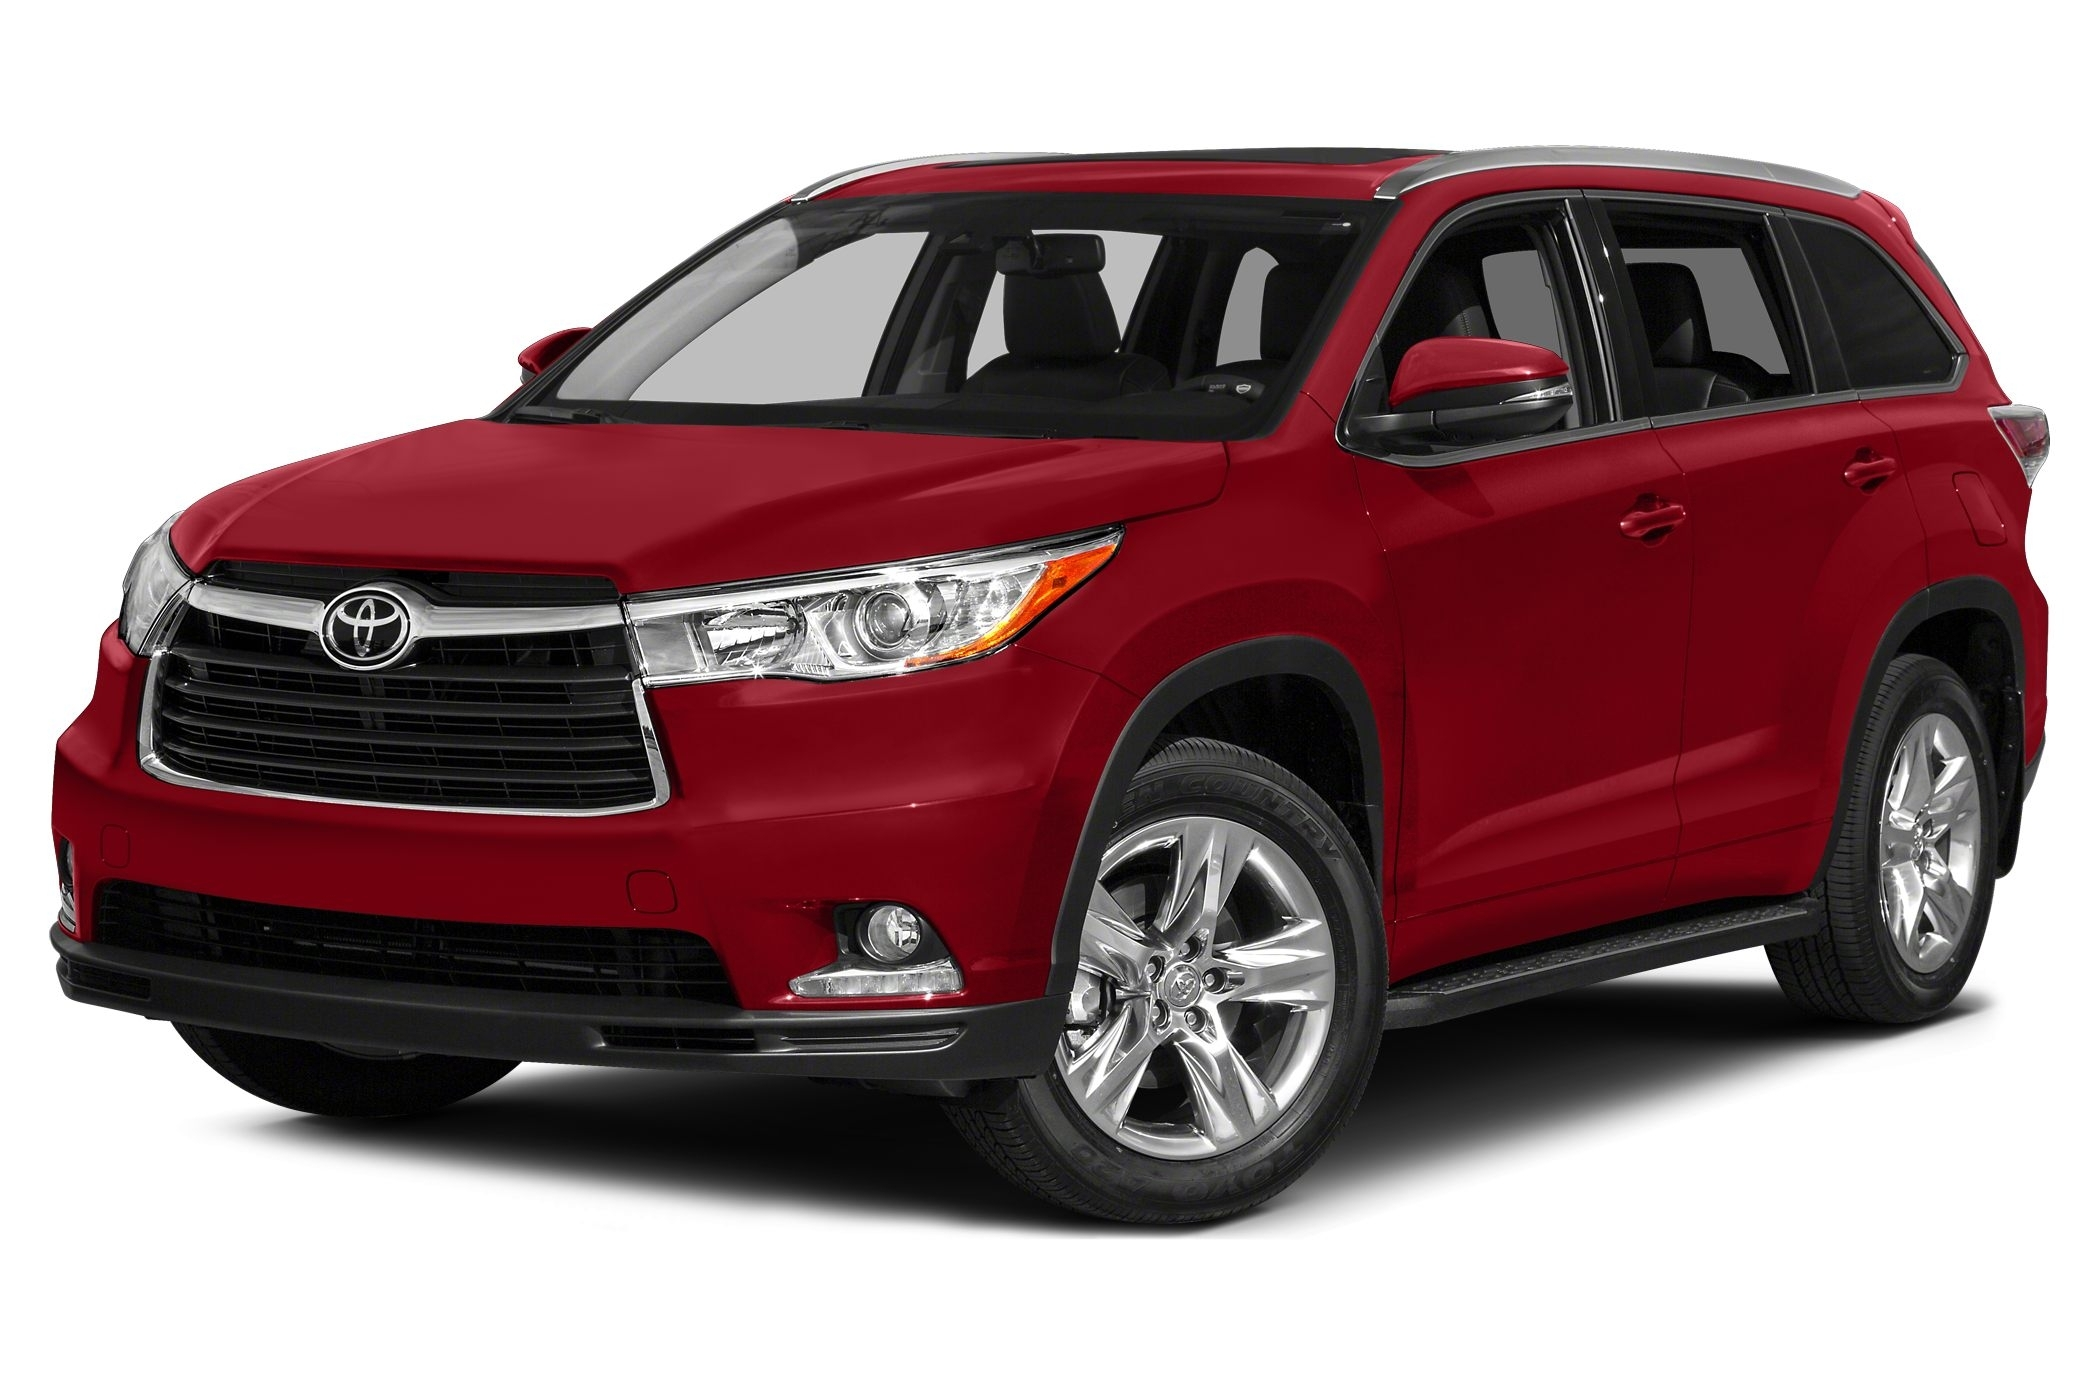 2015 highlander invoice price invoice template ideas invoice price toyota highlander